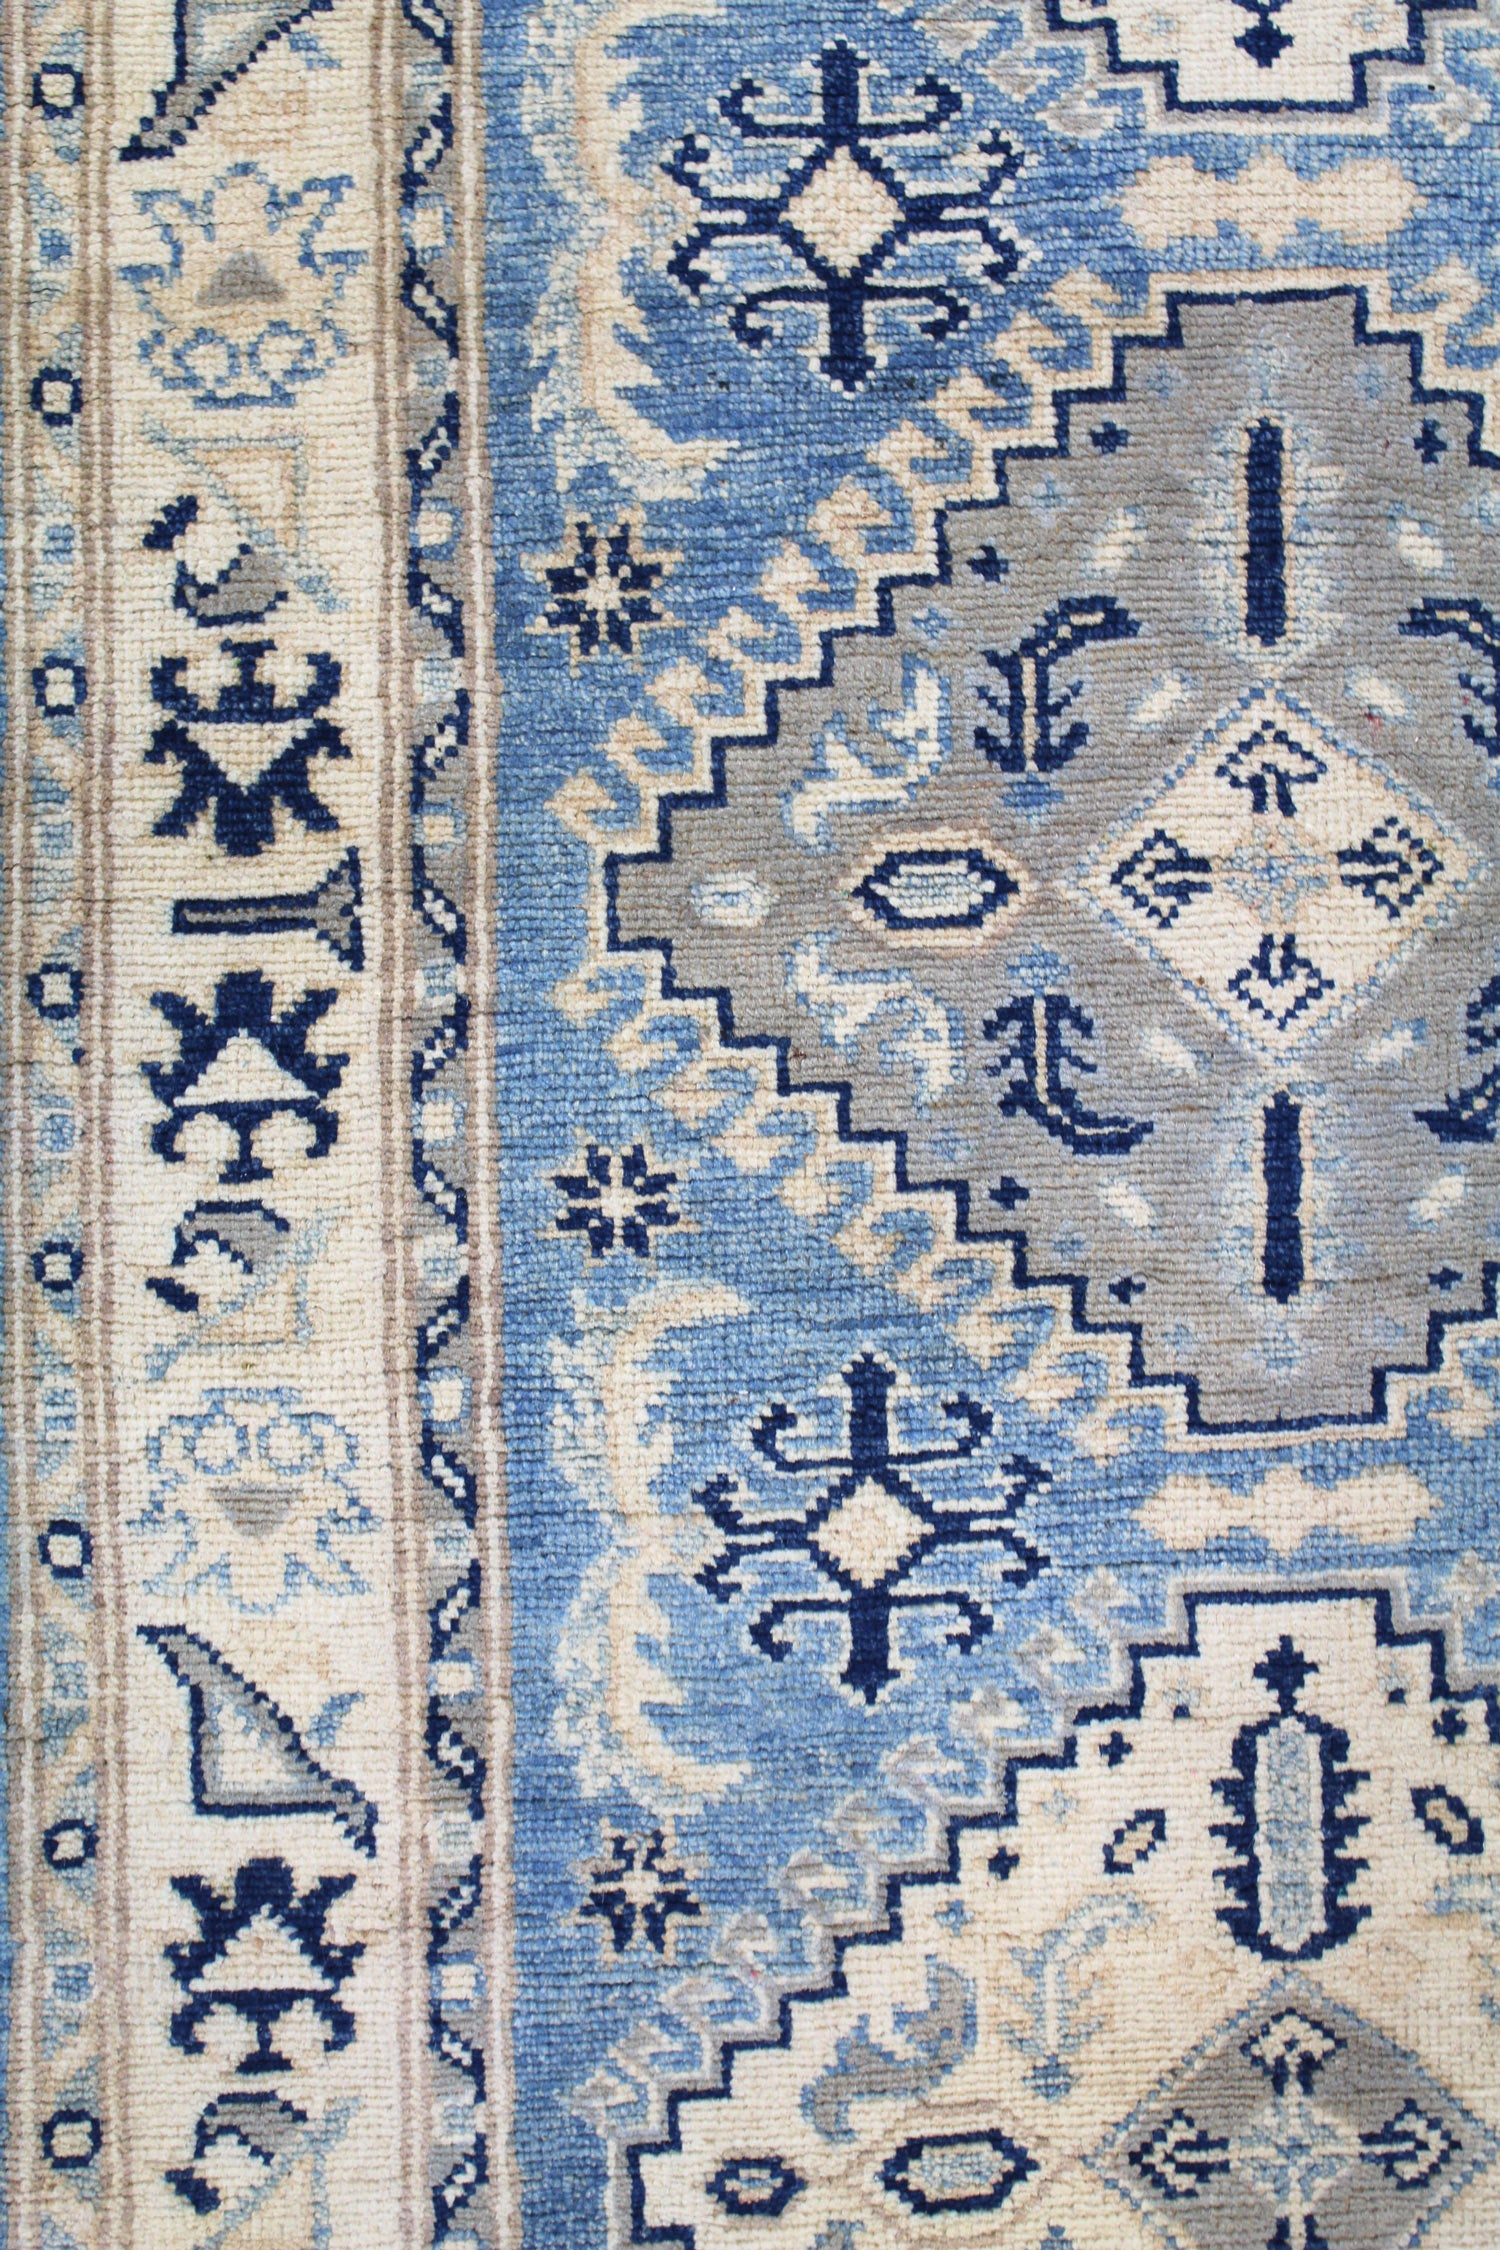 Kazak Handwoven Tribal Rug